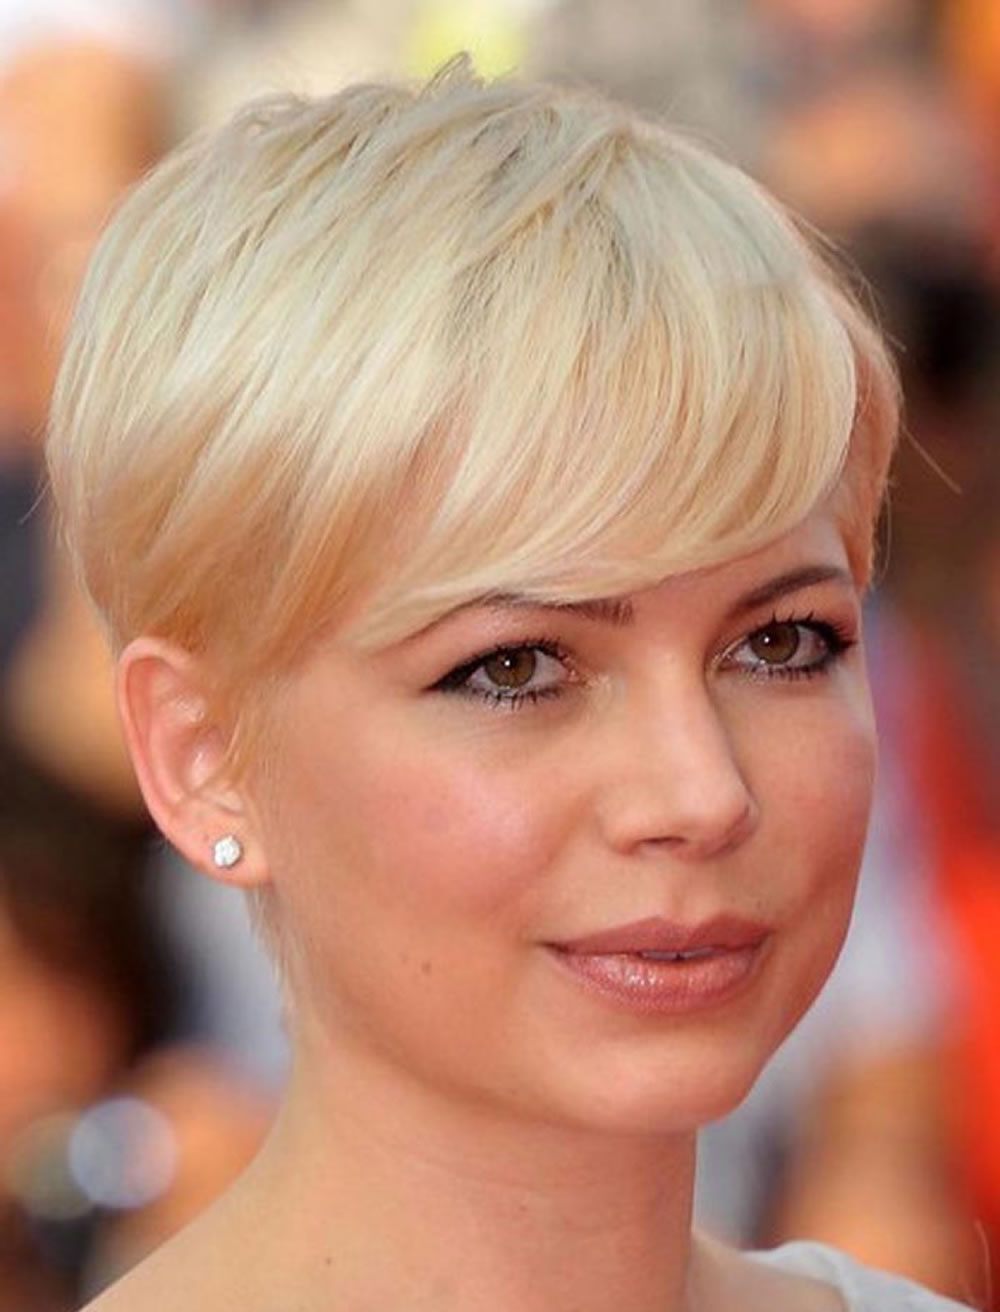 Short Haircuts For Round Face Thin Hair Ideas For 2018 – Hairstyles With Short Hairstyles For A Round Face (View 8 of 25)